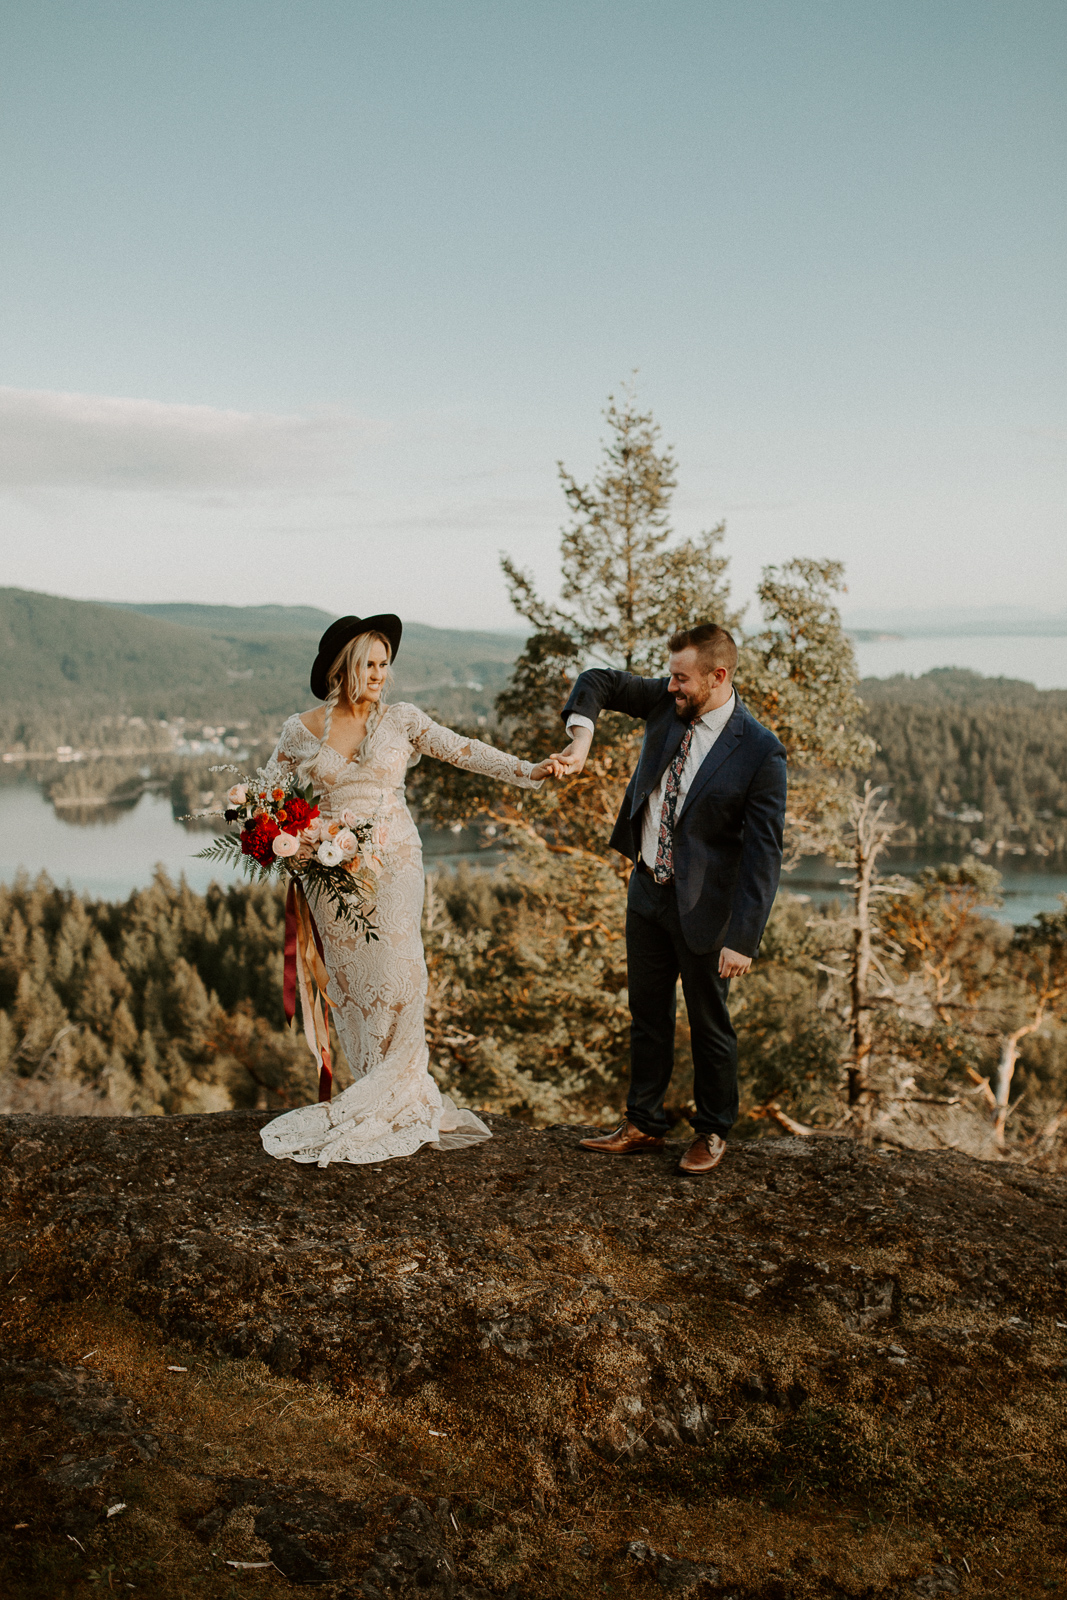 Luke Lambertson Photo_BritishColumbia_Canada_AdventurousCouple_Elopement_IMG-7915.jpg